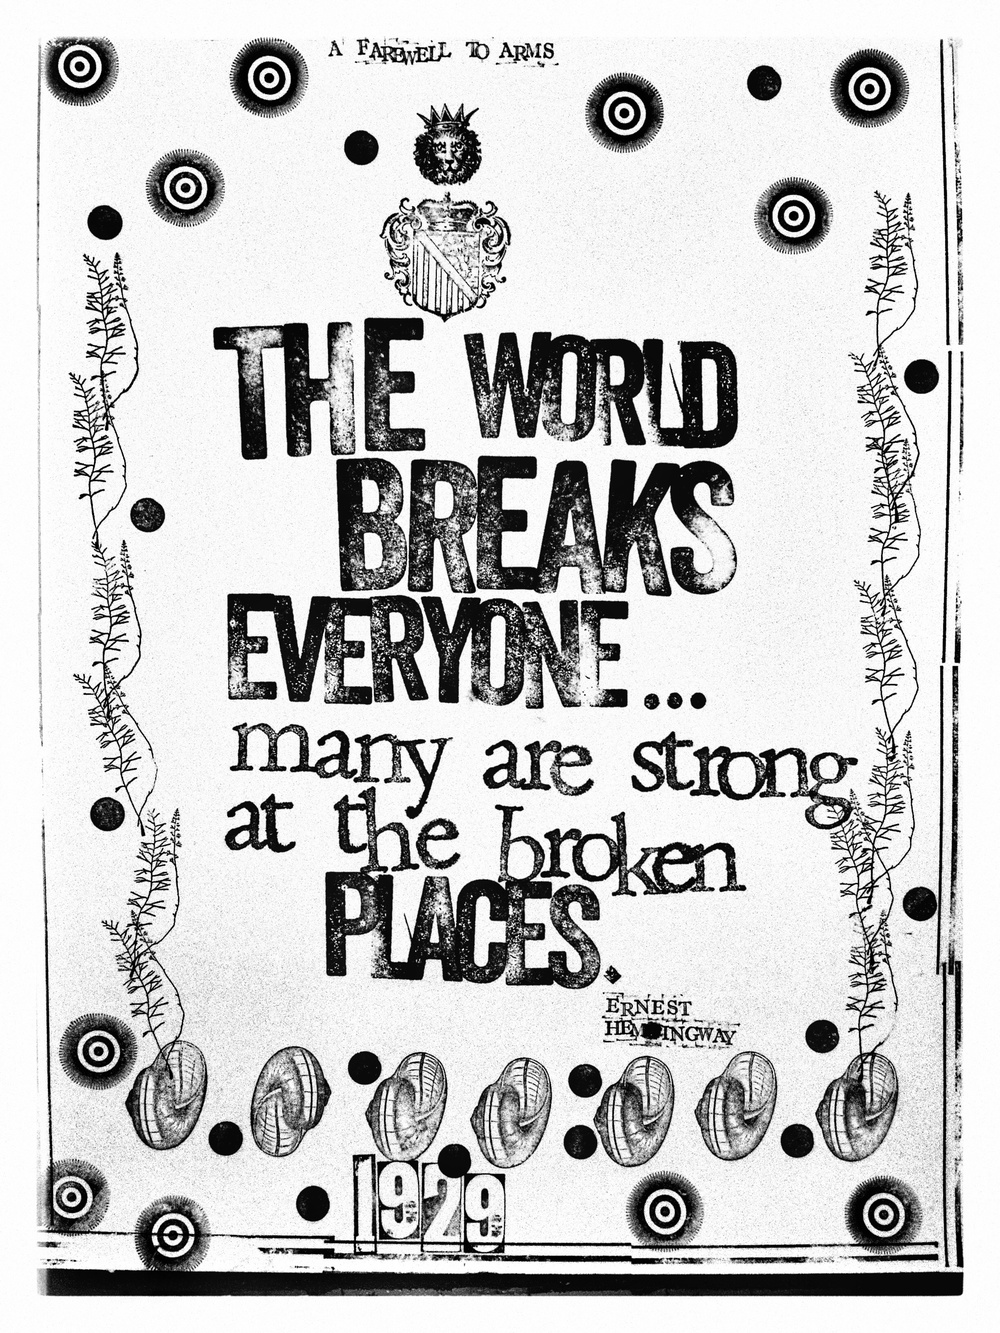 The world breaks breaks everyone. . . many are strong at the broken places. [It was too late: added an extra m Hemingway. I knew it was wrong as soon as I stamped the m. Almost last thing stamped, no way was I going to start over.]